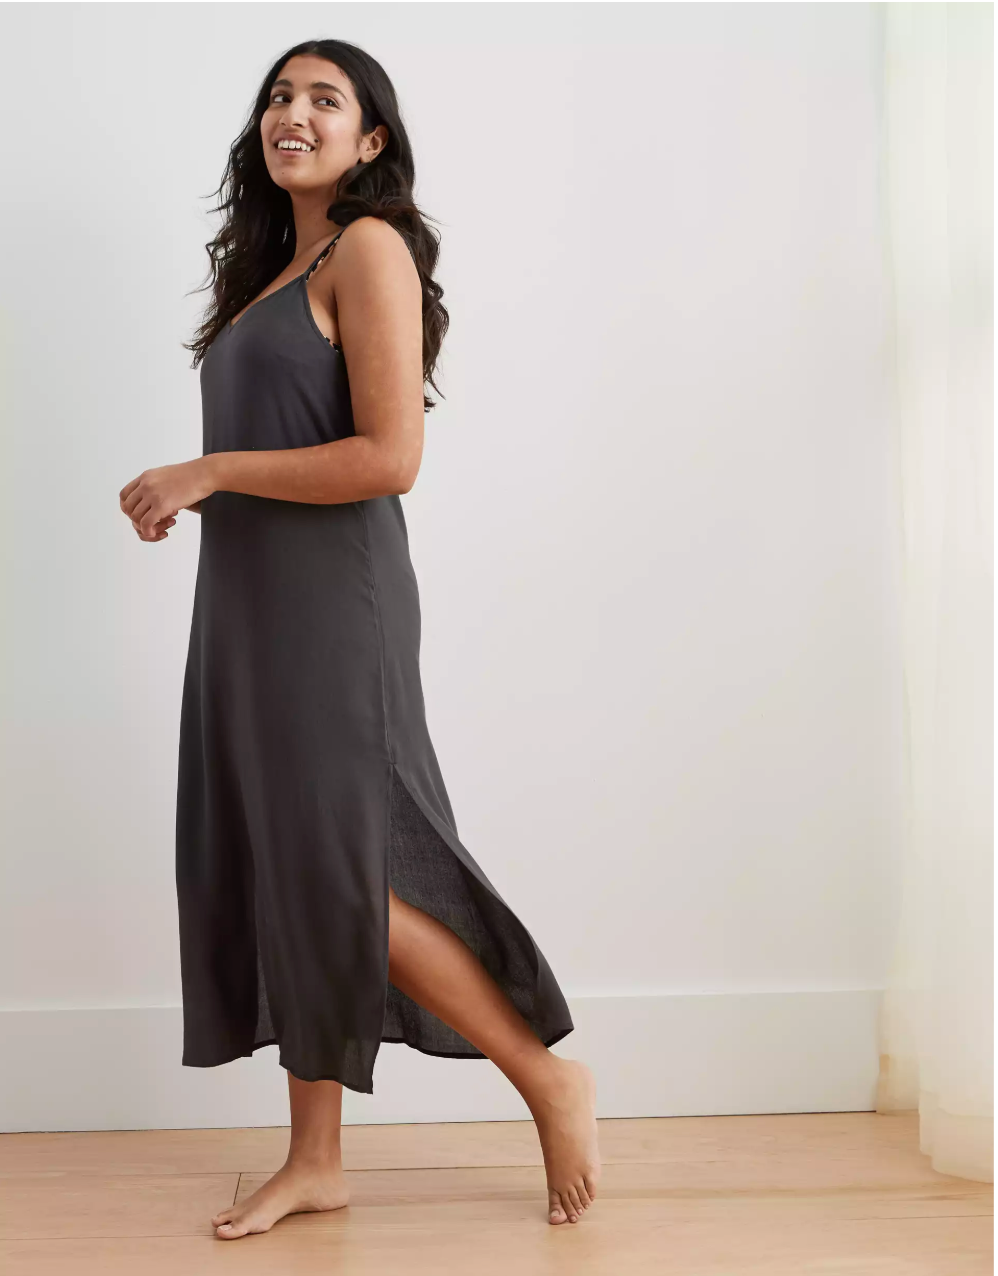 Aerie Gauze Midi Slip Dress, I got it in a smoked grey color on sale for $33 (normally about $45)